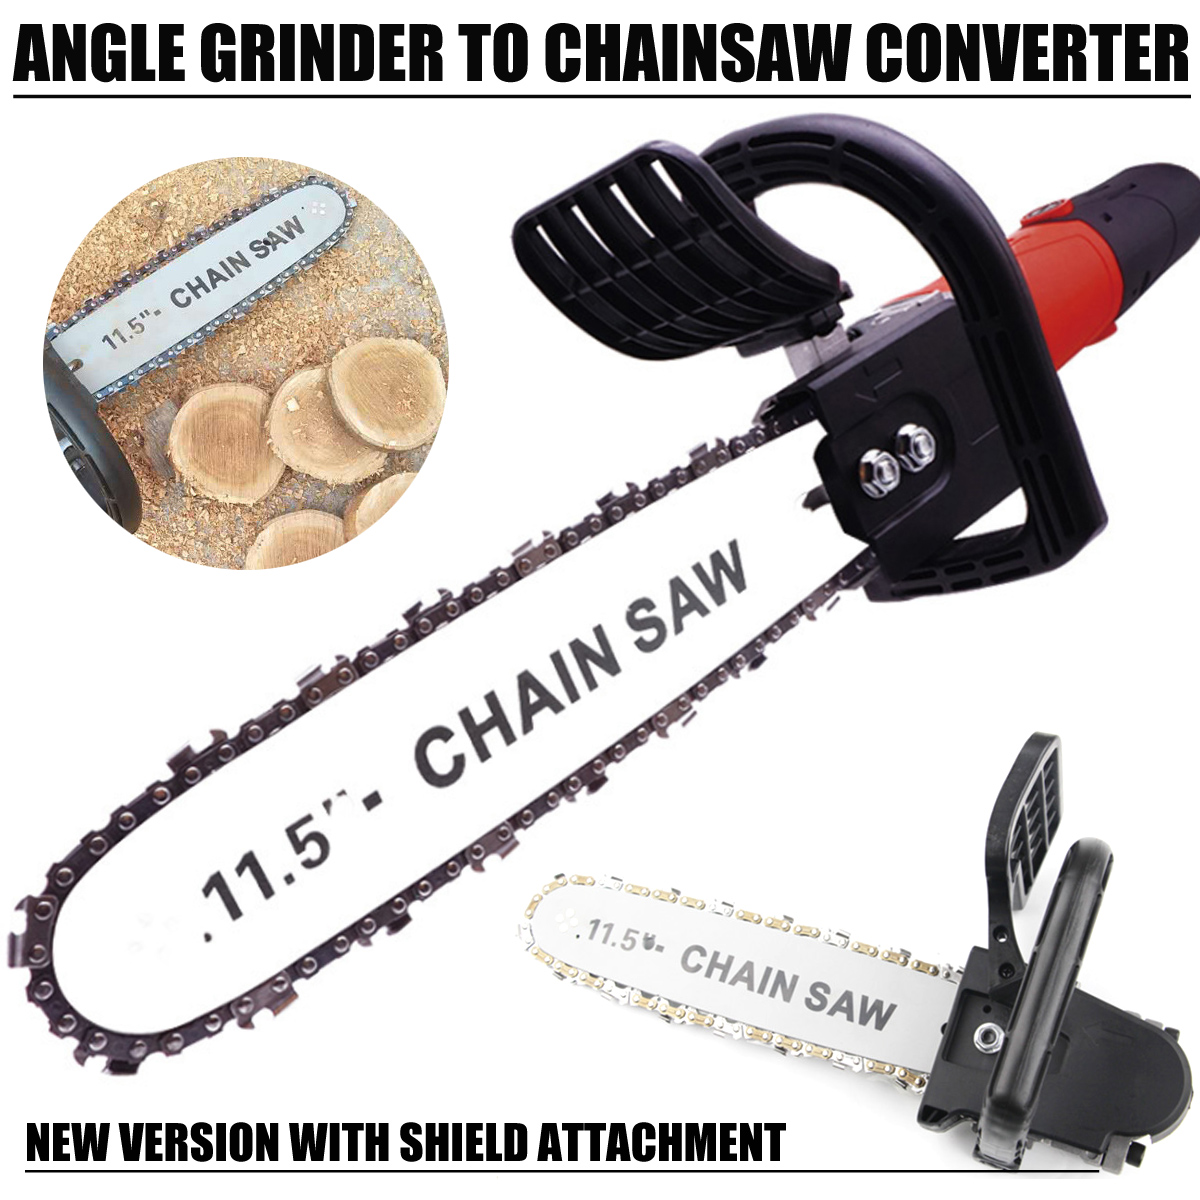 11.5 Inch M10 M14 Chain Saw Bracket Set Chainsaw Guide Bar Transfer Conversion Head For Angle Grinder DIY